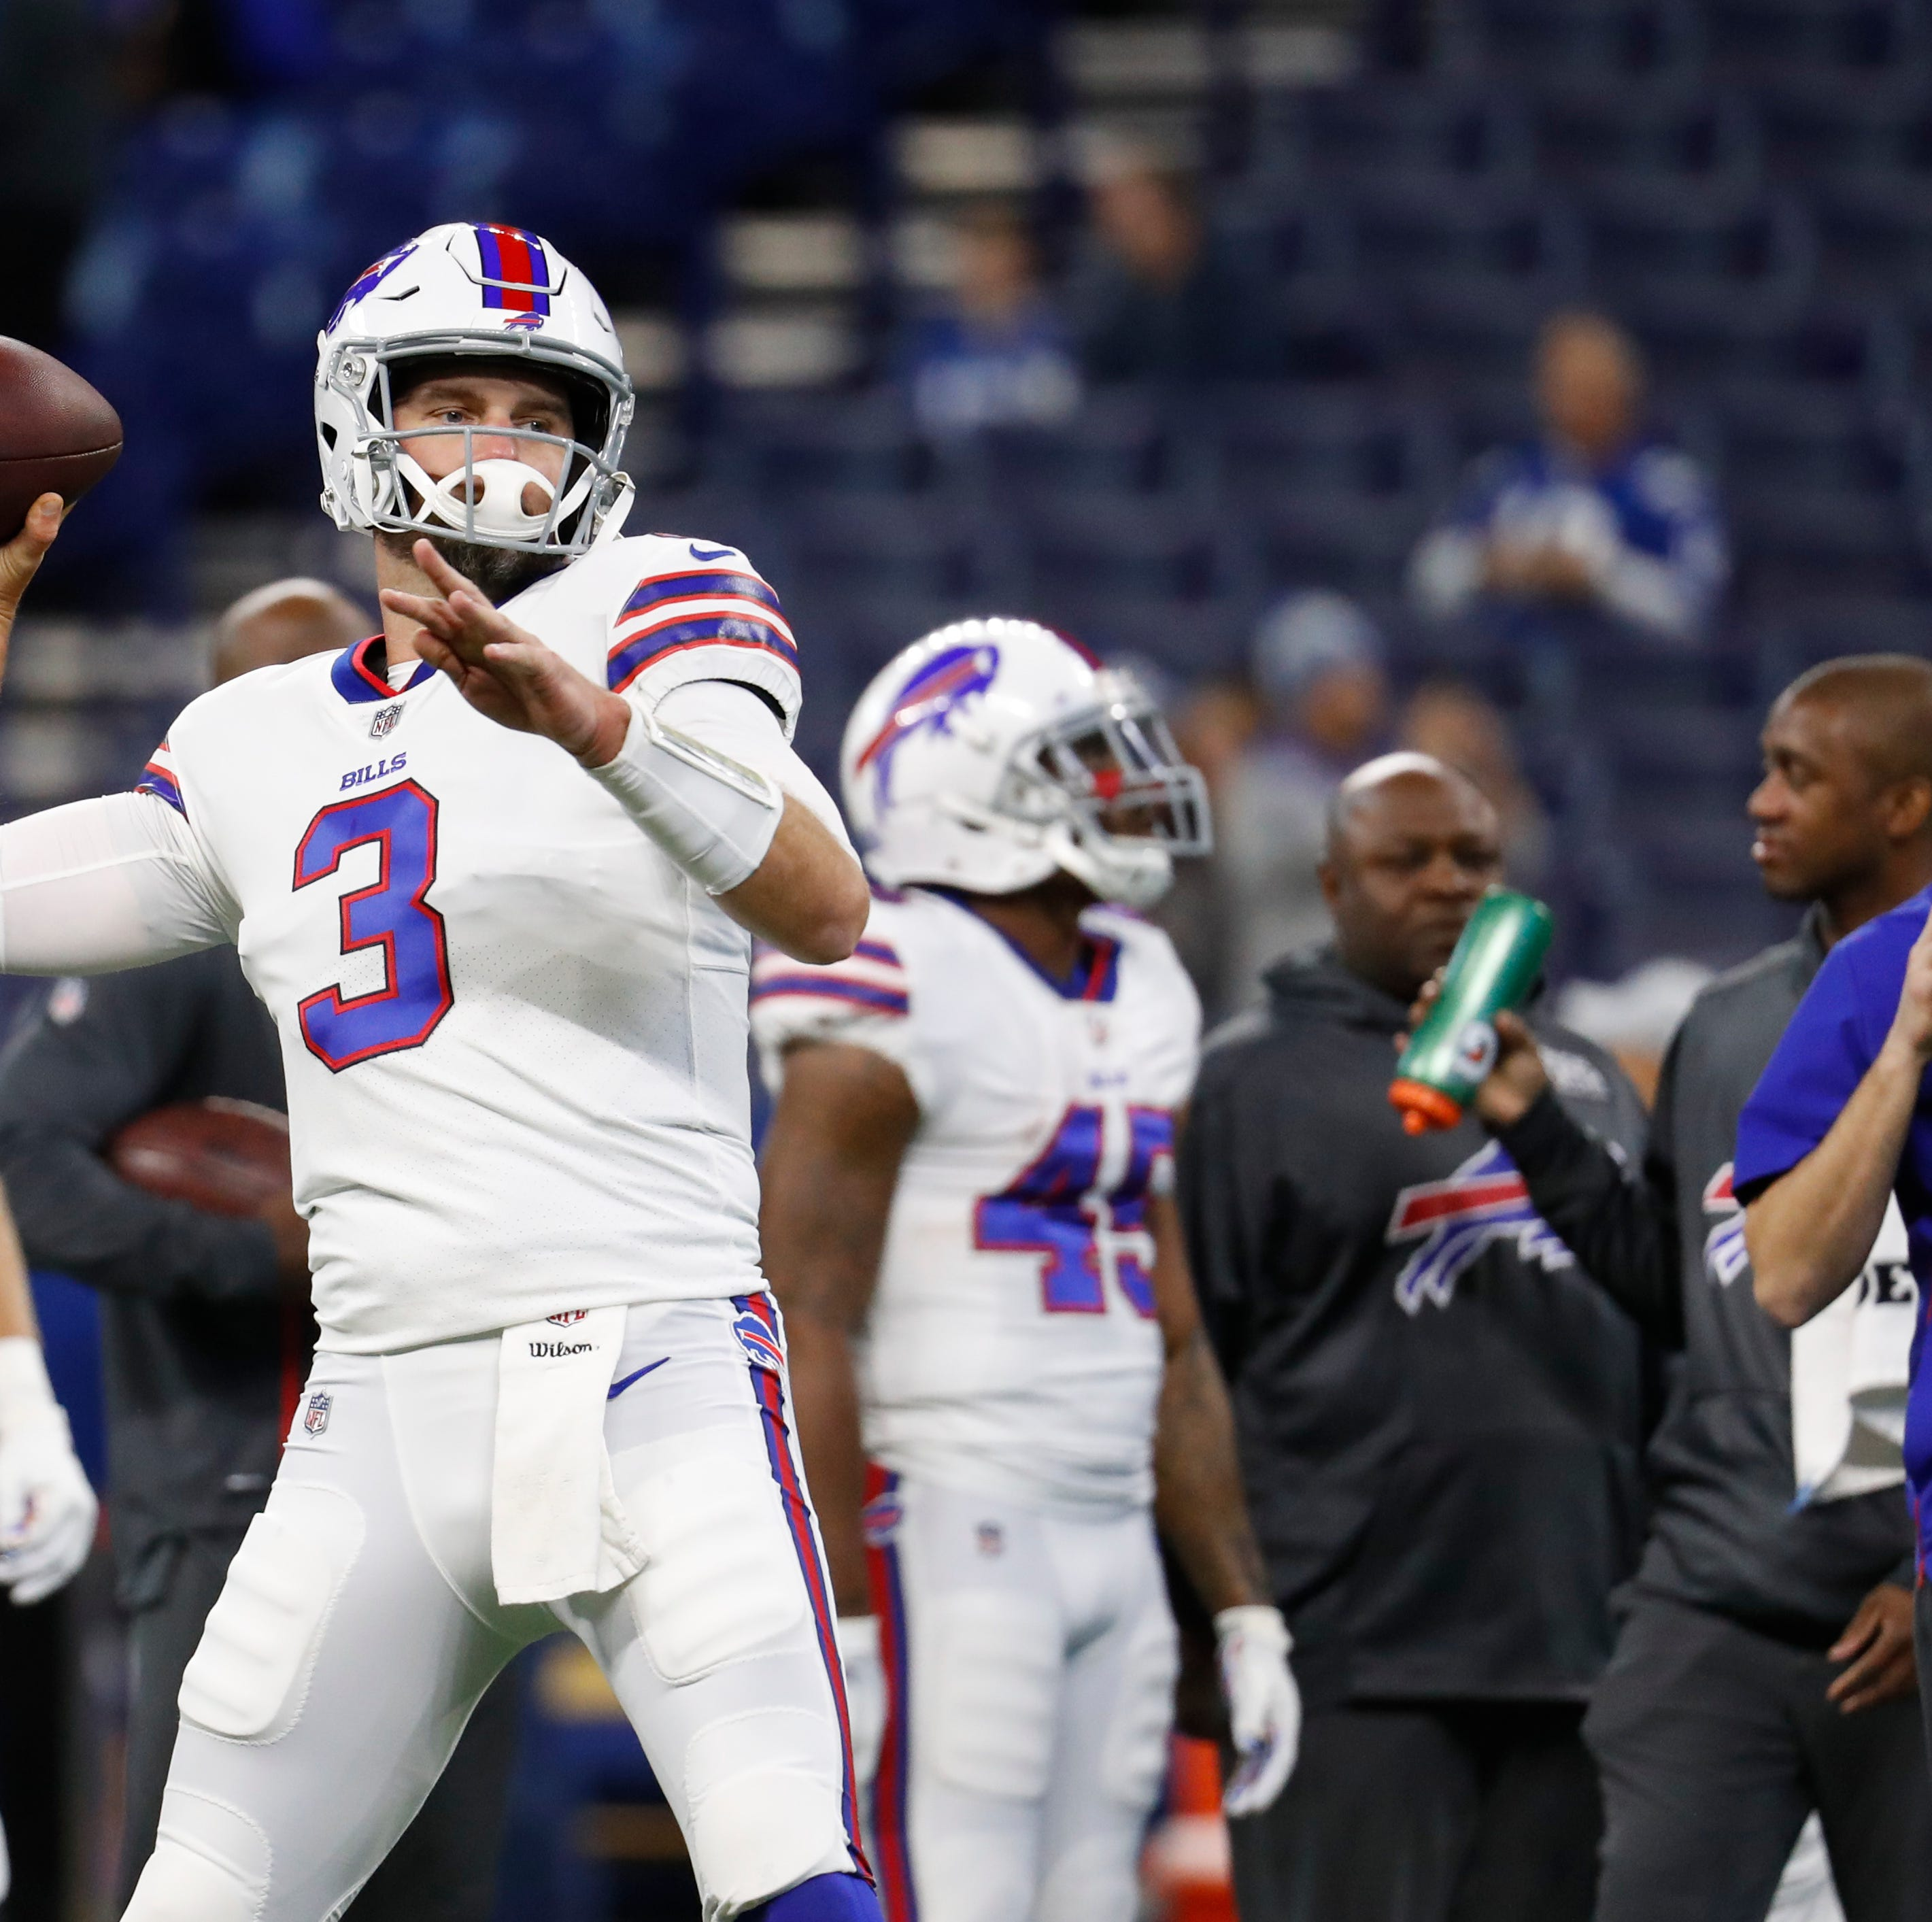 Final score and recap: Indianapolis Colts 37, Buffalo Bills 5